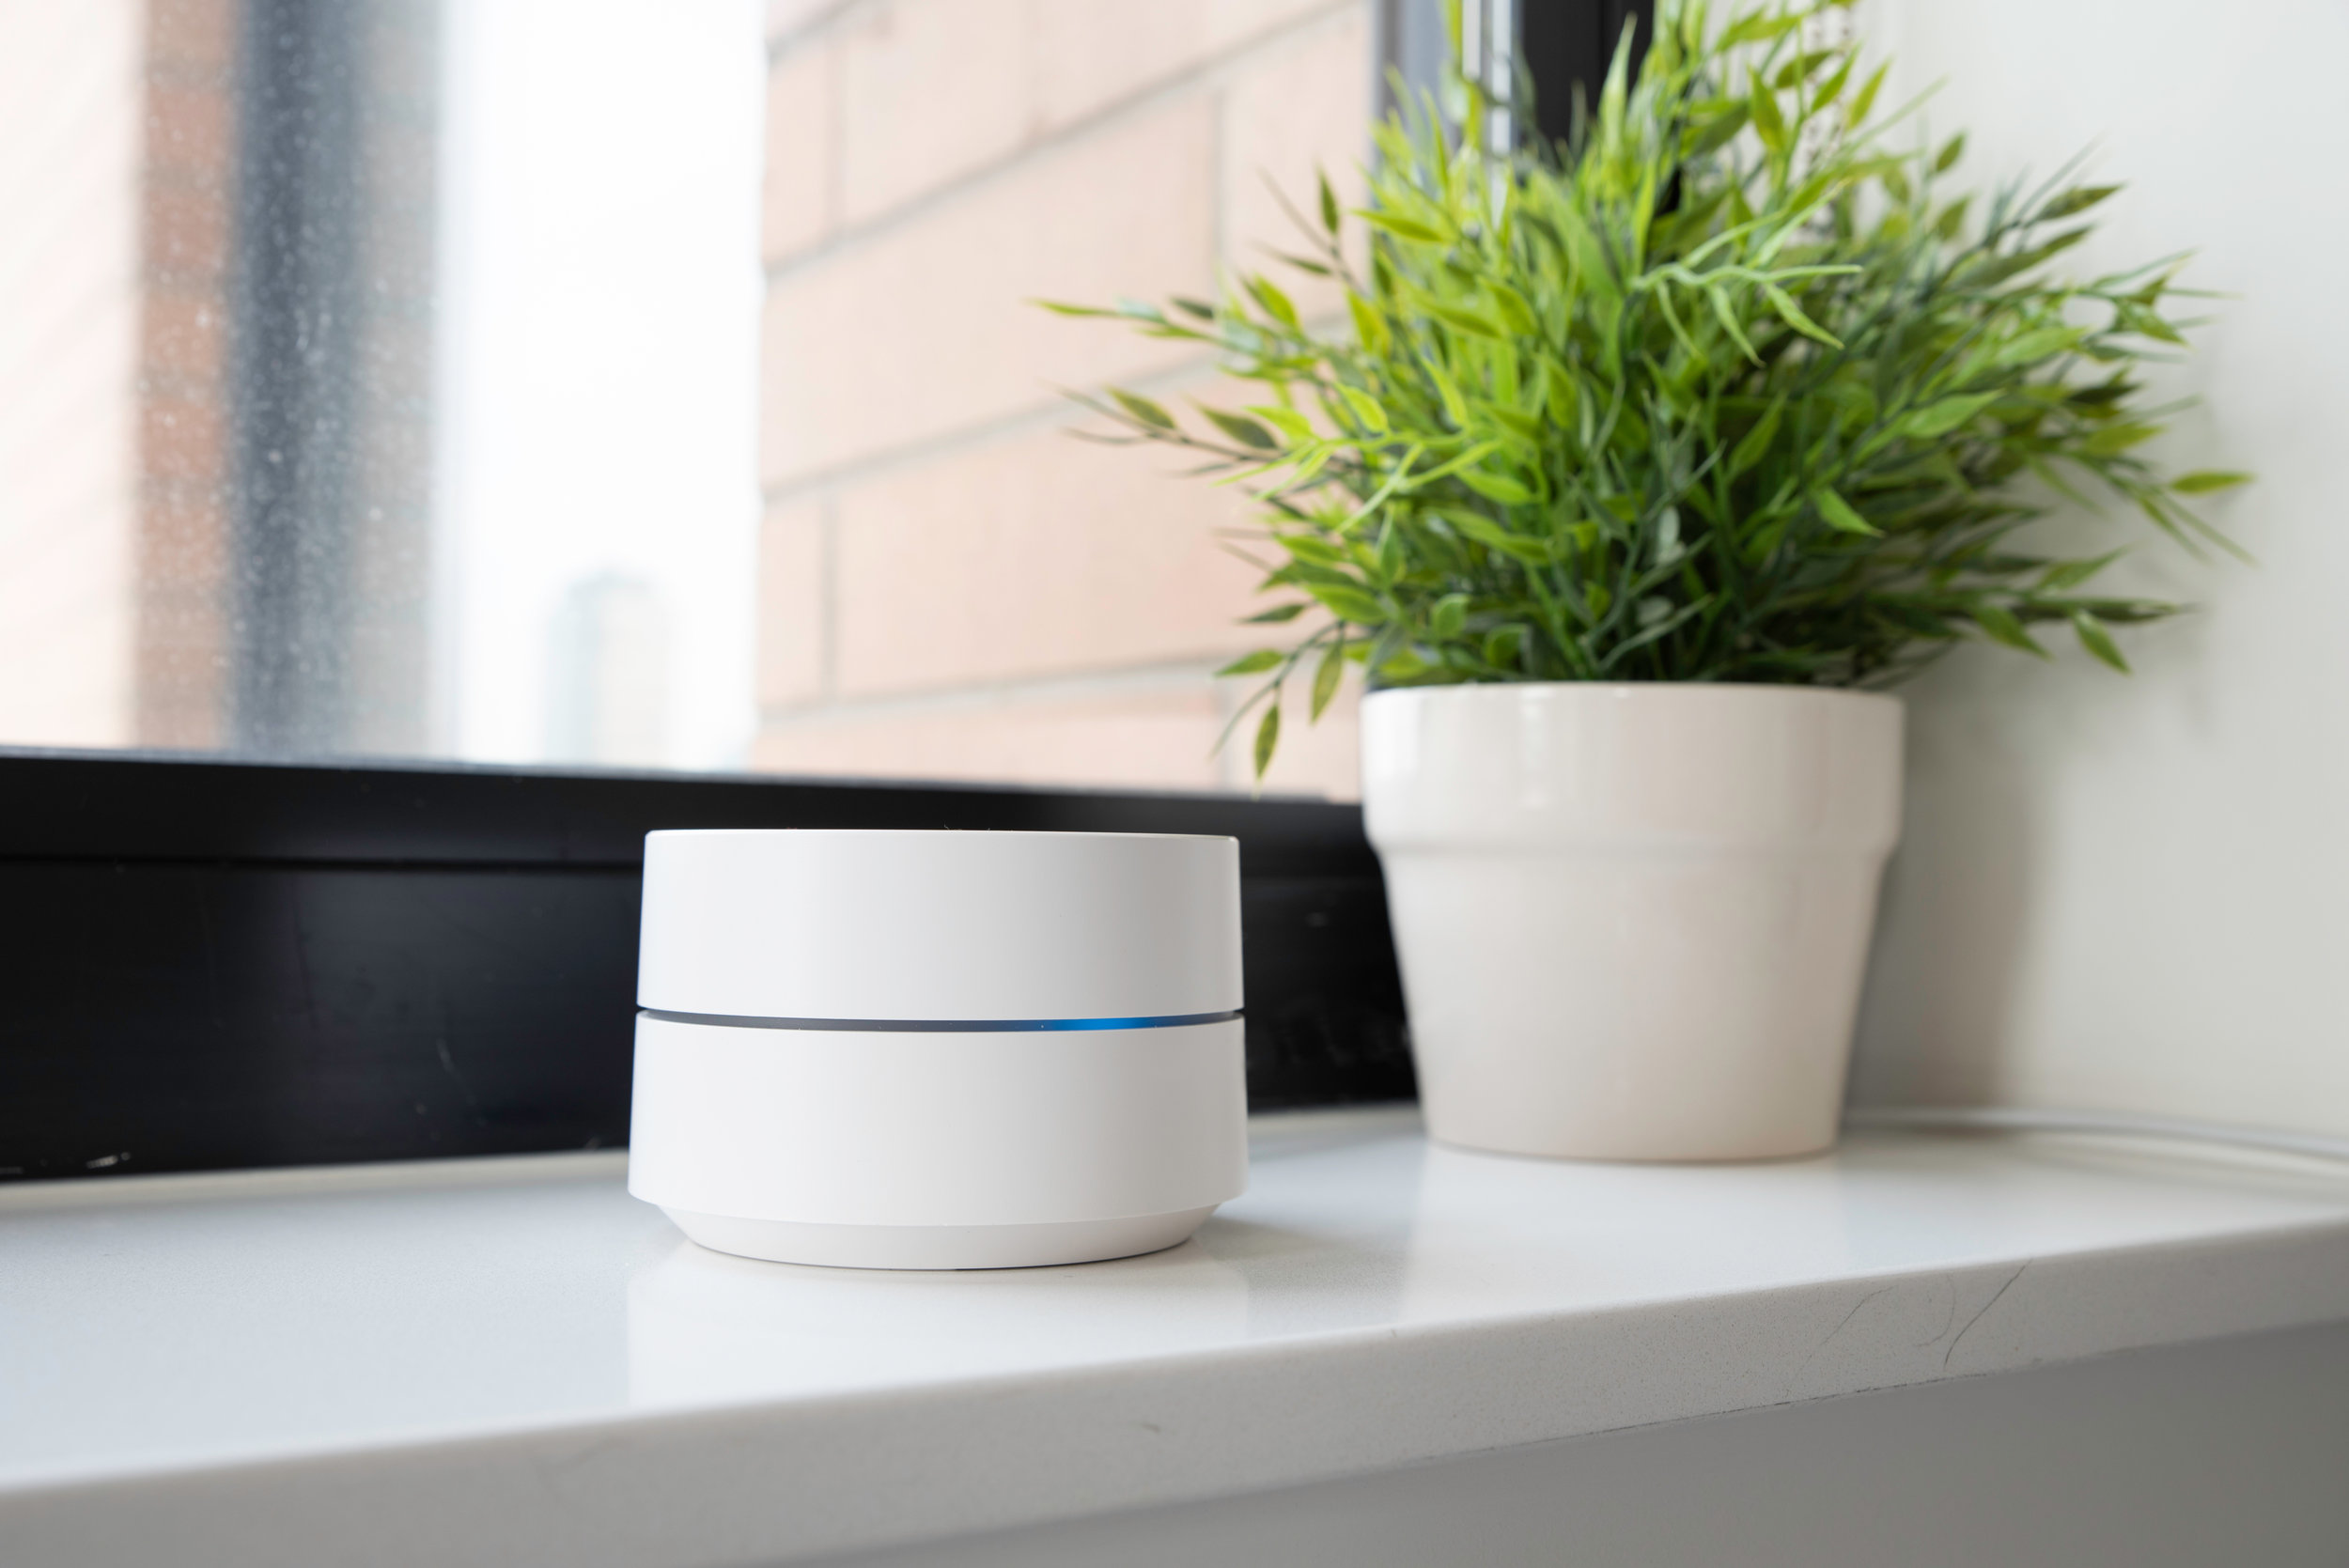 Wall-to-Wall WiFi - Starting at $225Let our caring tech experts optimize your existing equipment or have us deliver and set up the perfect solution for your apartment. We understand the challenges of getting strong WiFi to every corner of your home. Each setup comes with a personalized tutorial.Google WiFi 3-Pack – $299